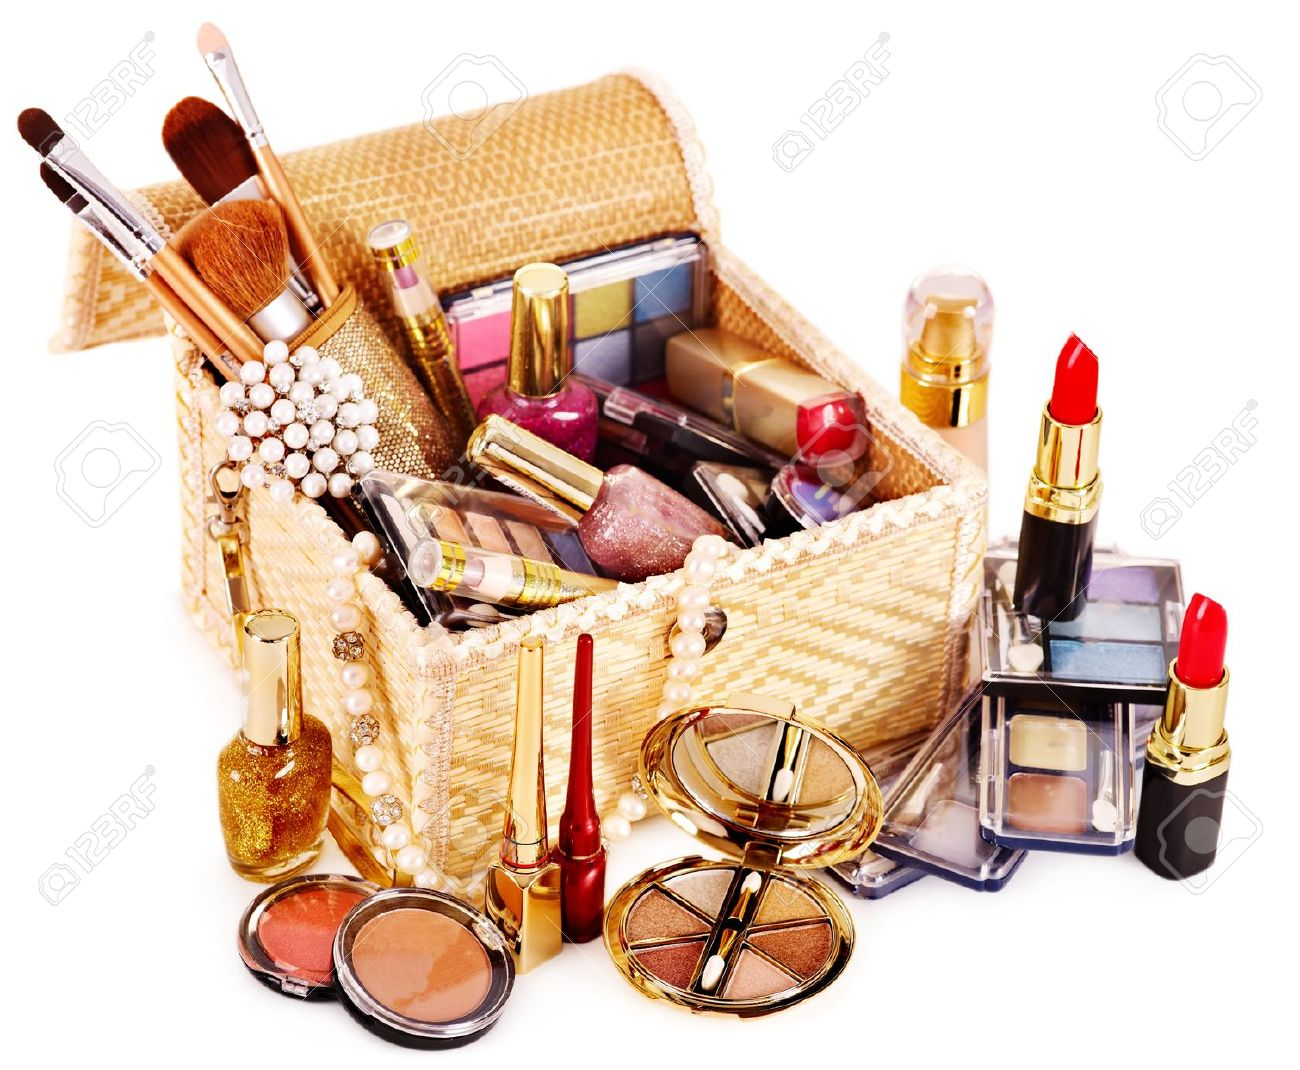 Image result for images of a makeup case